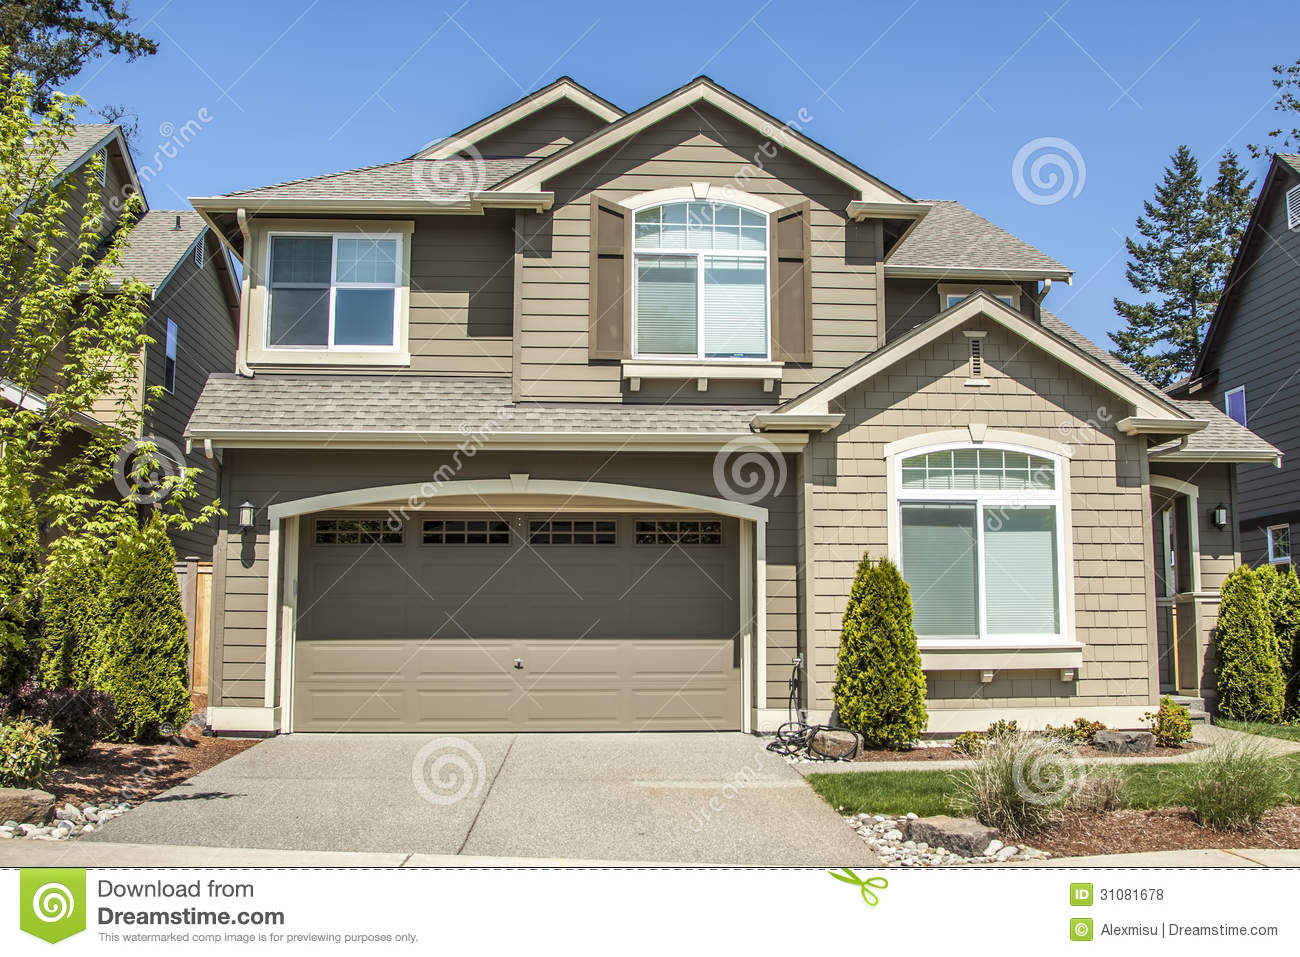 Suburban House Royalty Free Stock Photos Image 31081678